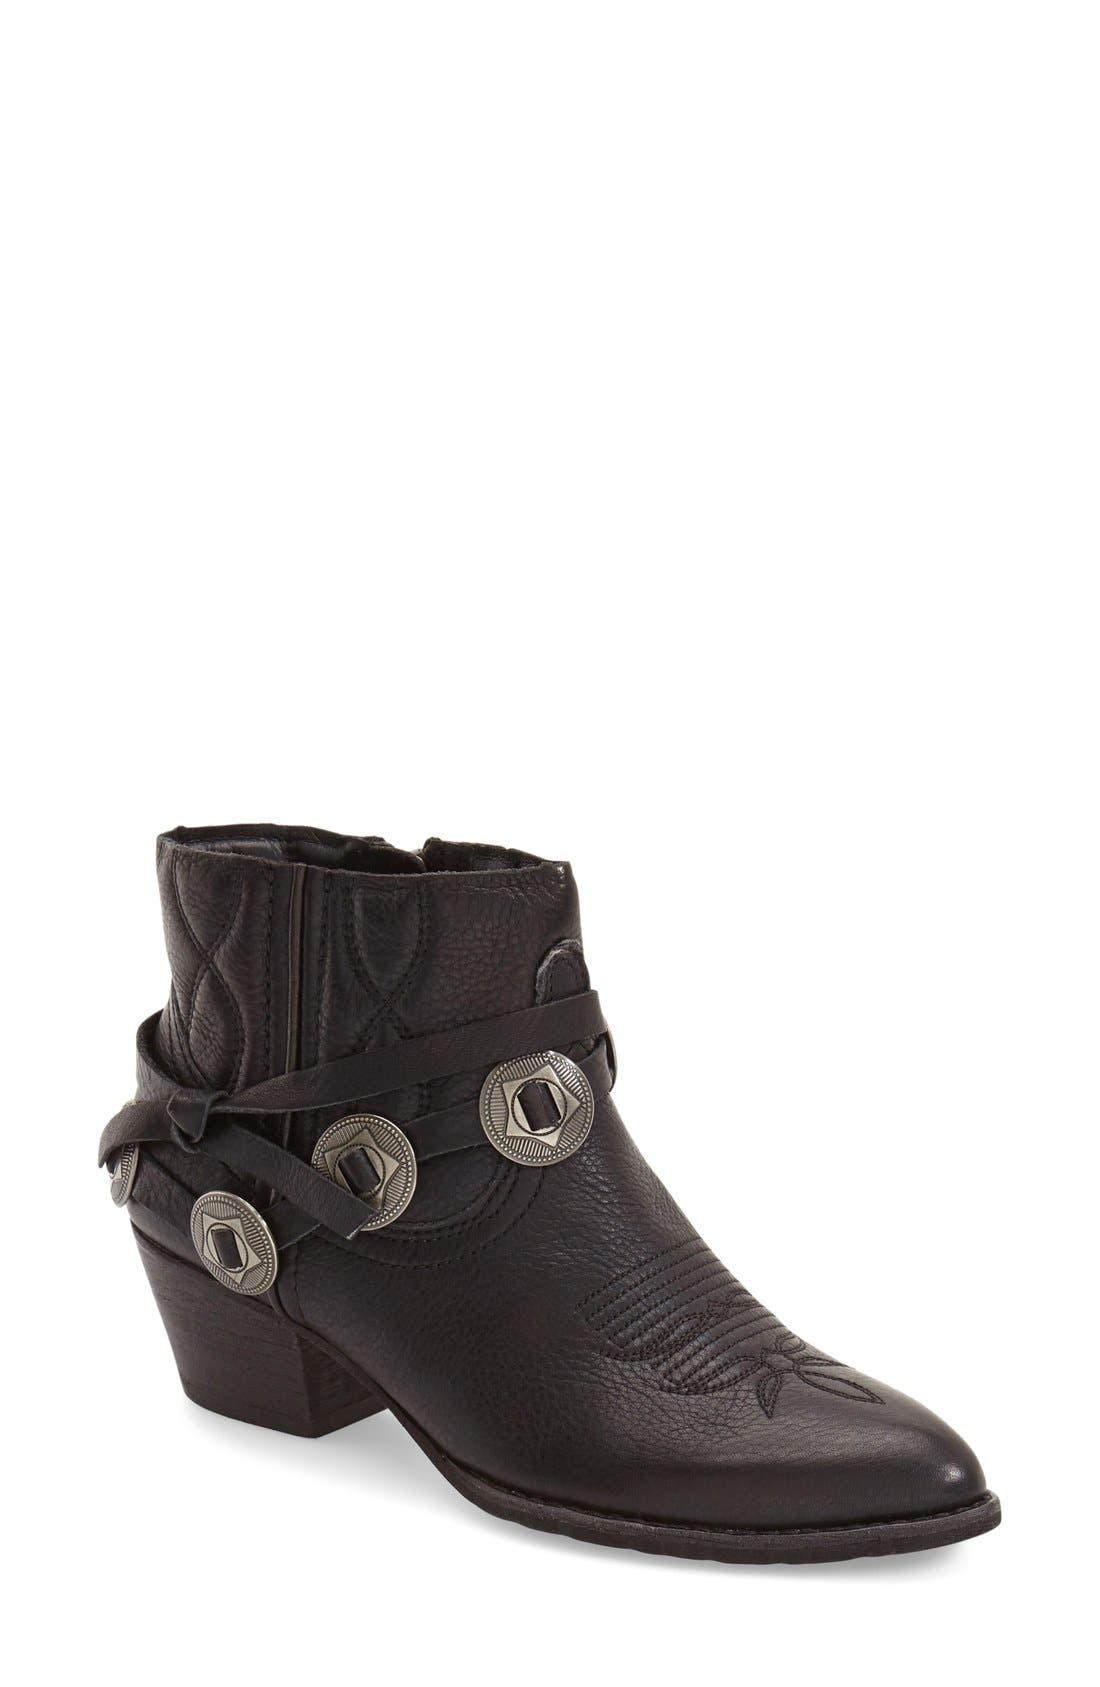 'Skye' Western Bootie,                             Main thumbnail 1, color,                             001